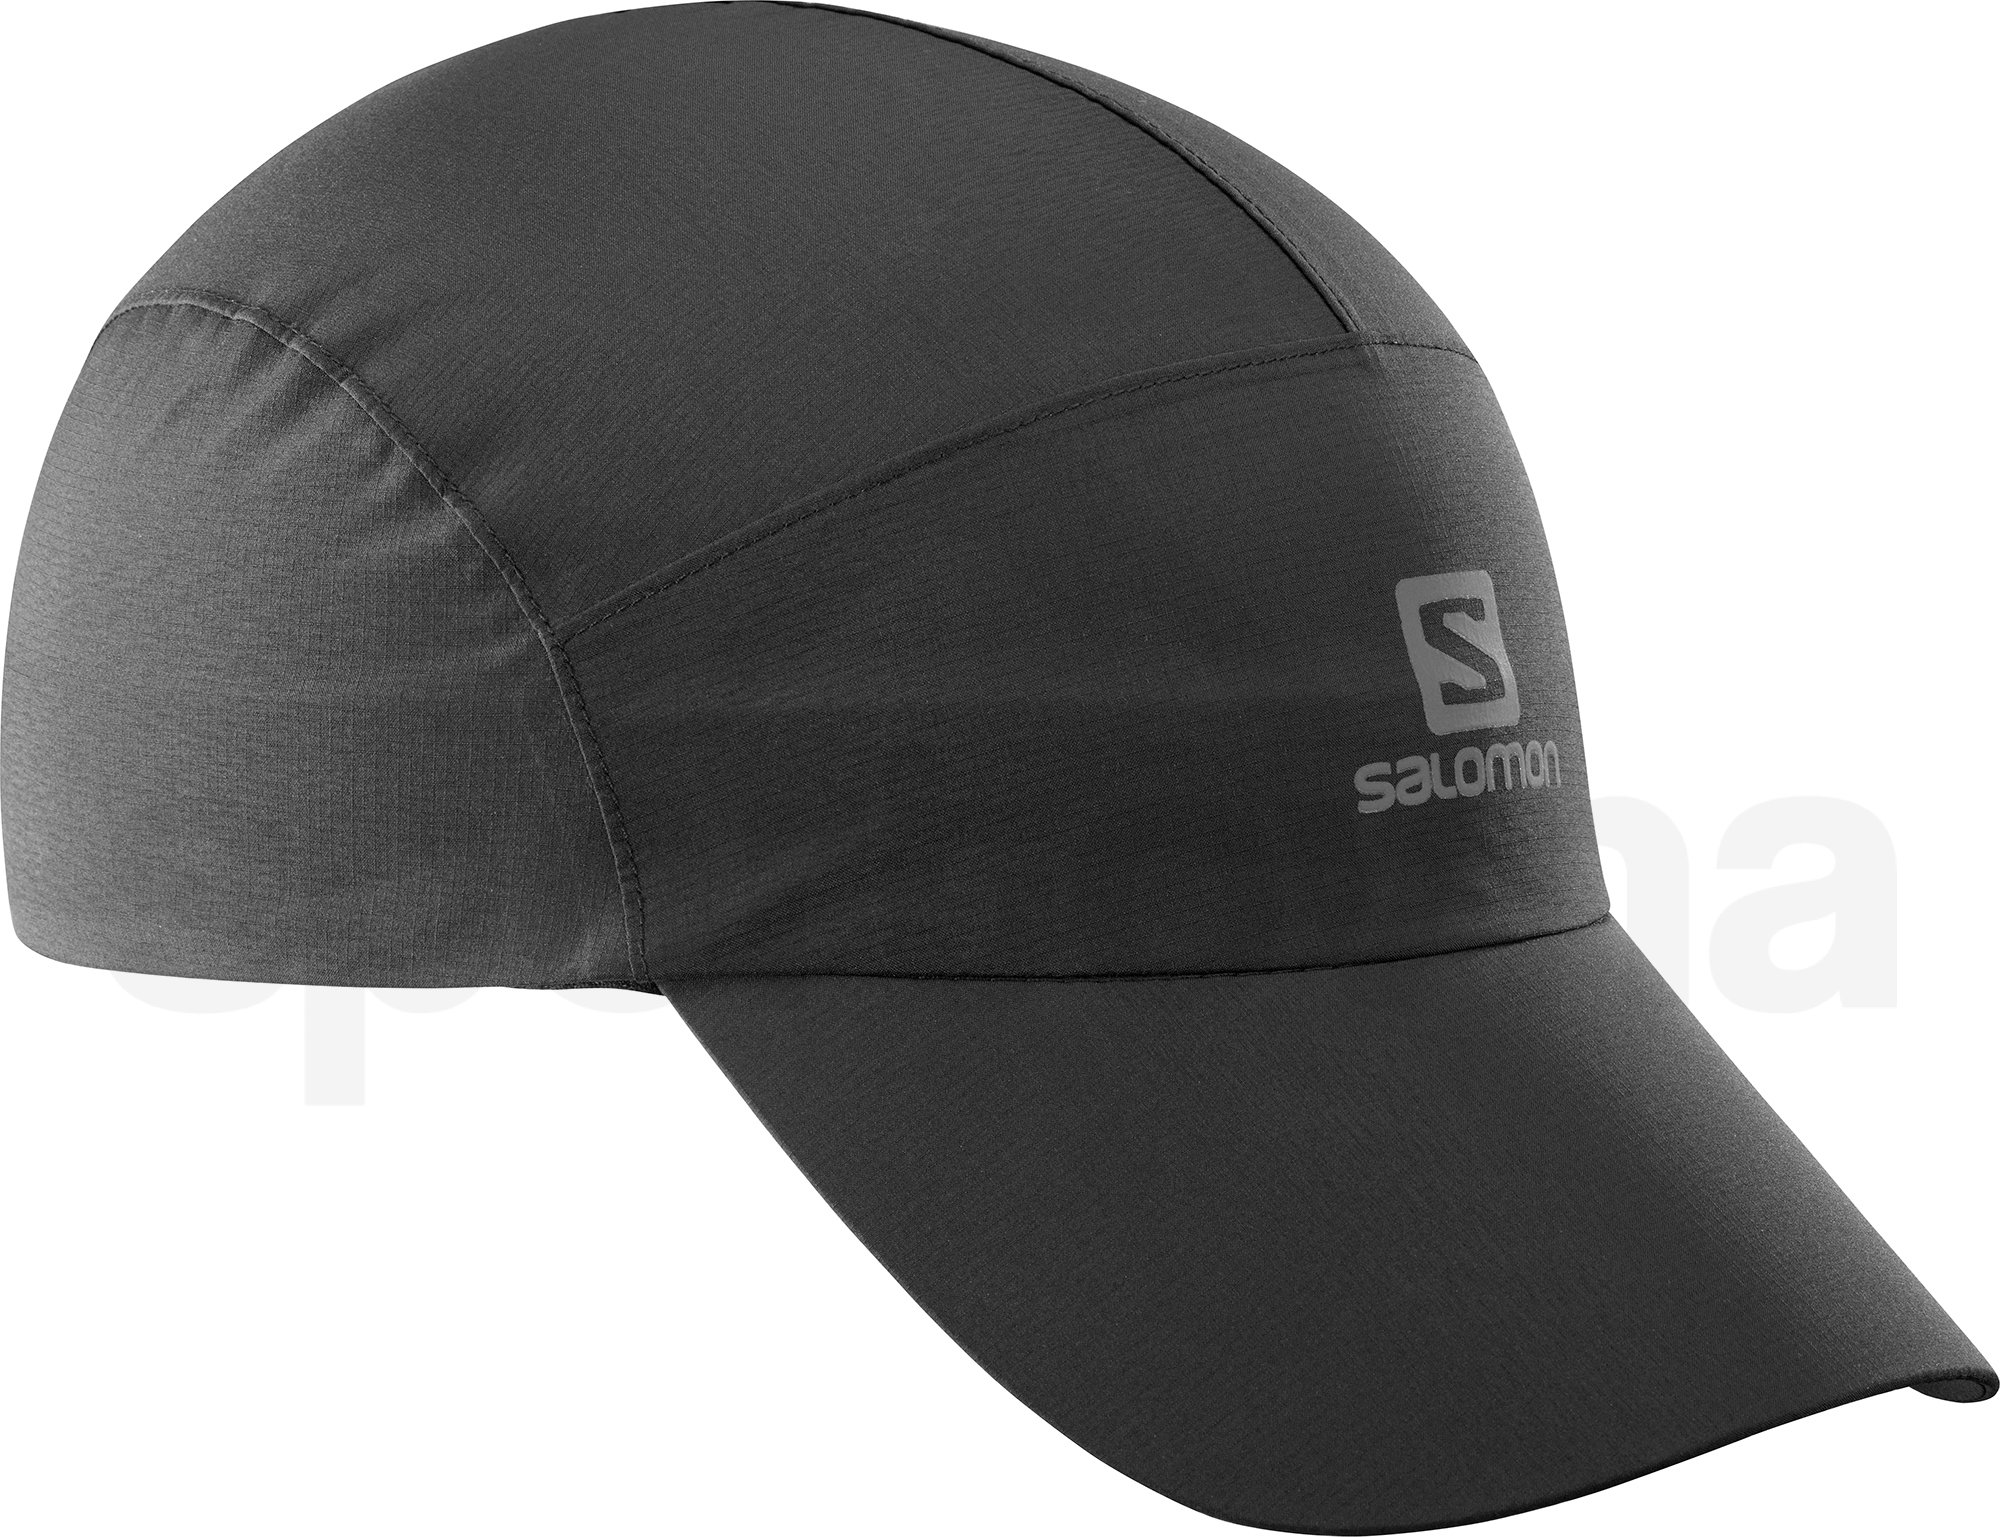 LC1118700_0_u_waterproofcap_black_run.jpg.cq5dam.web.2000.1537